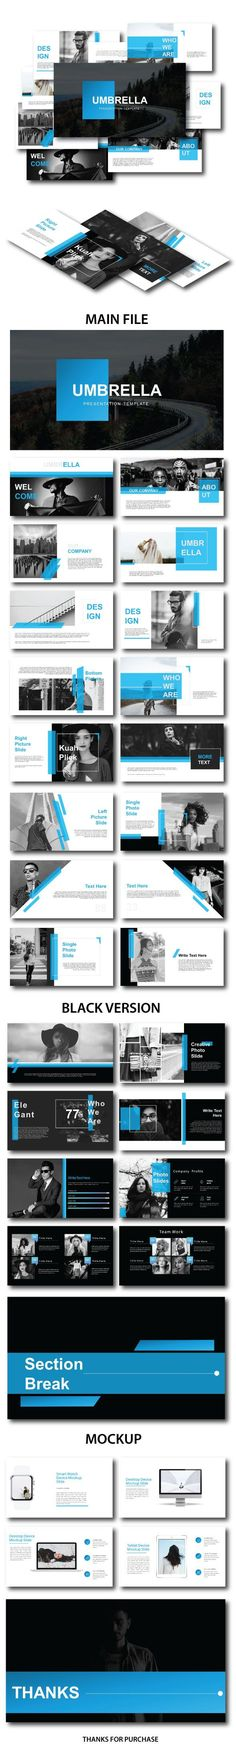 Umbrella Multipurpose Template - PowerPoint Templates Presentation Templates